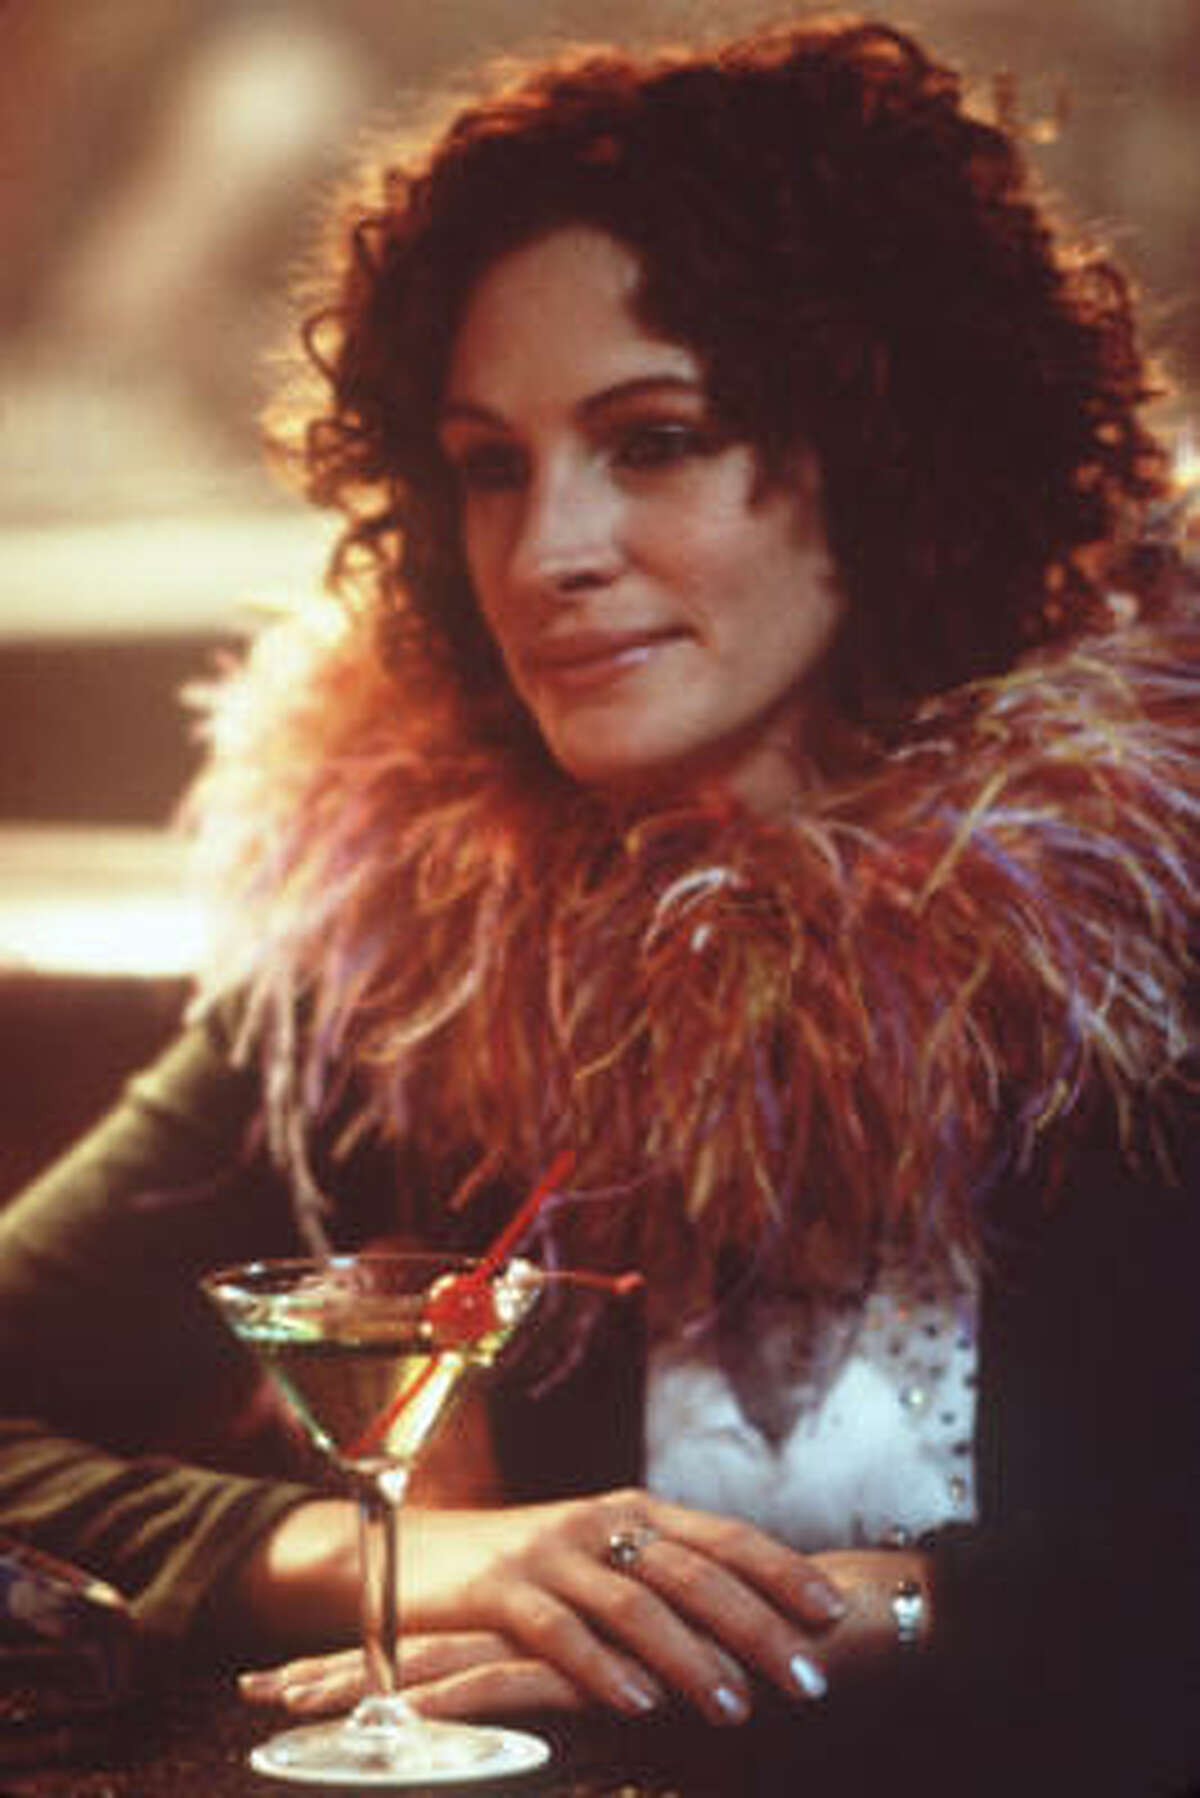 Roberts made her film debut in 1989's Blood Red.